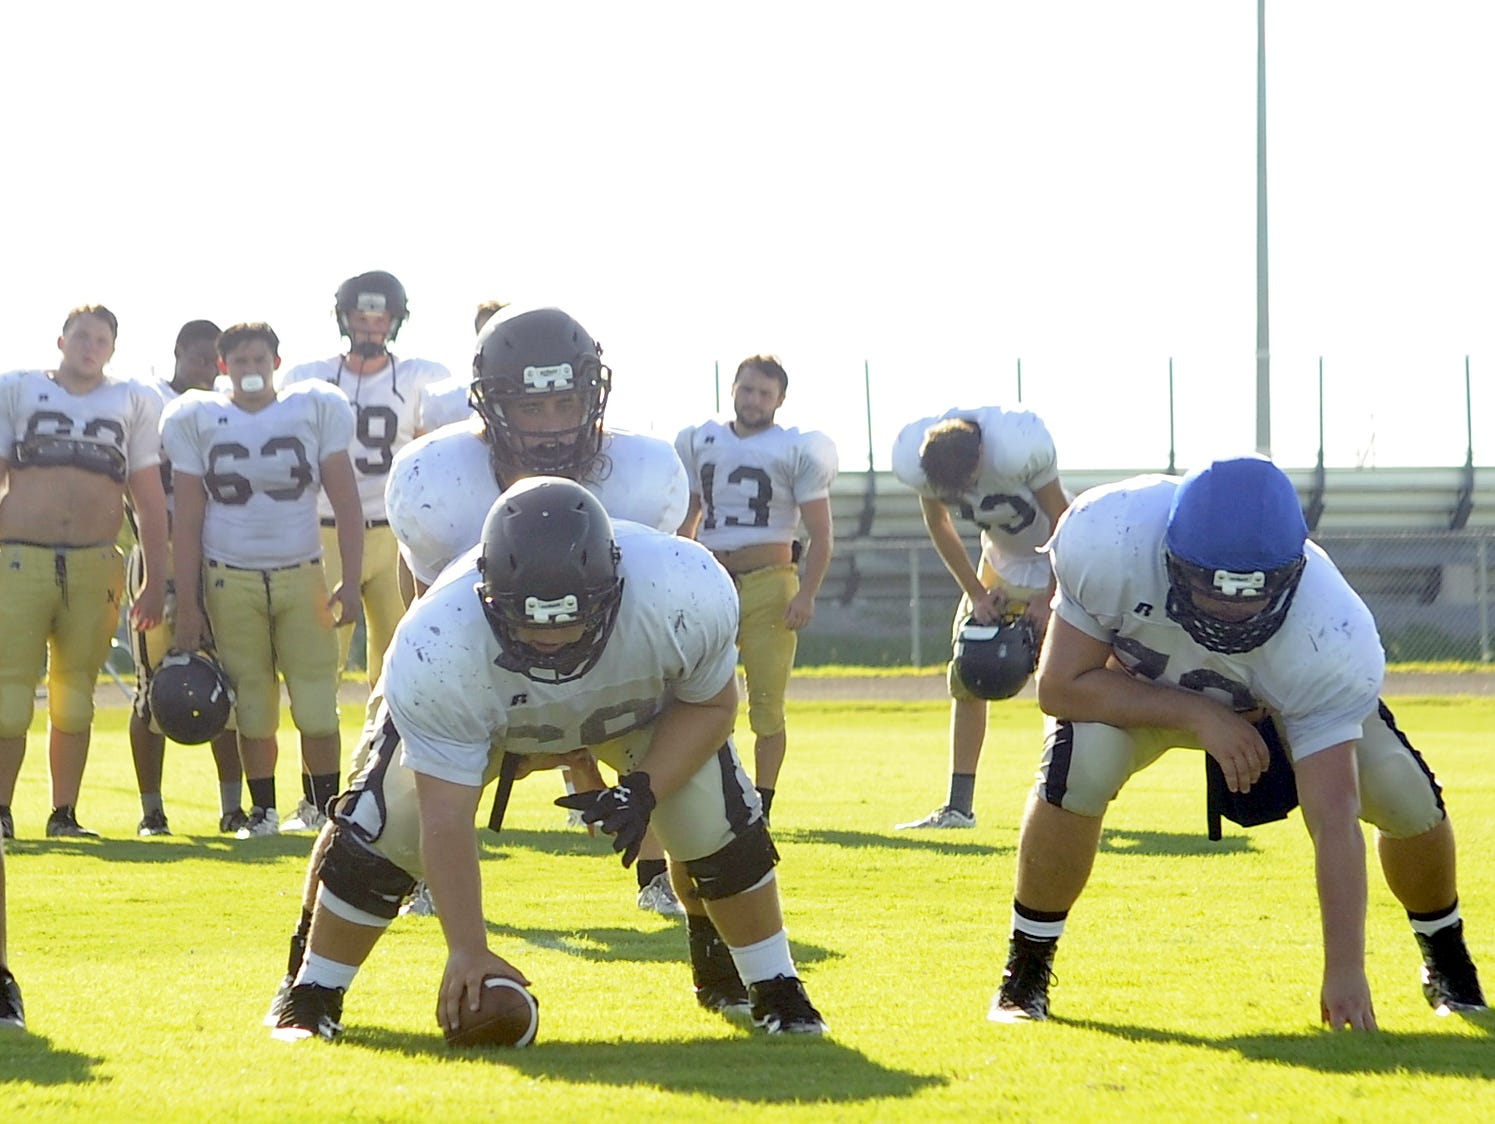 The Mt. Juliet offensive line consists of five returning starters.